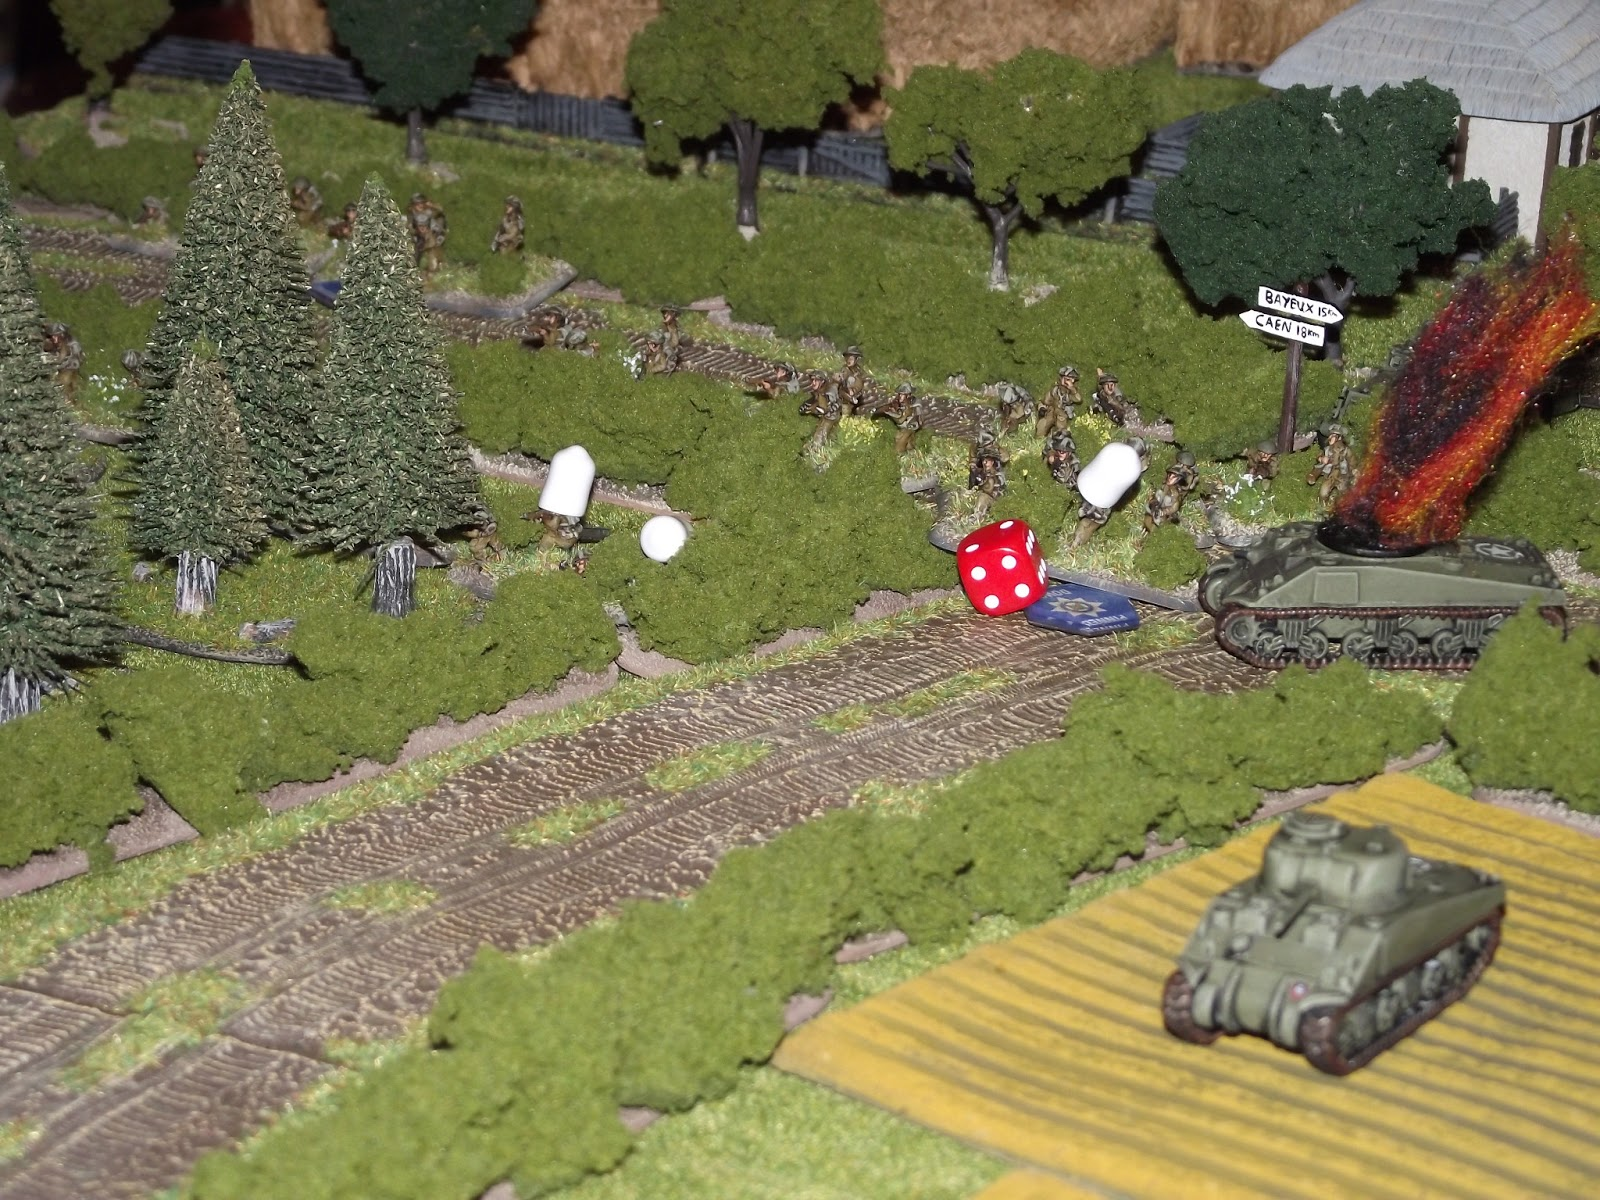 A silly British squad manages to find some open ground (road), but its torn apart by MG42 fire.